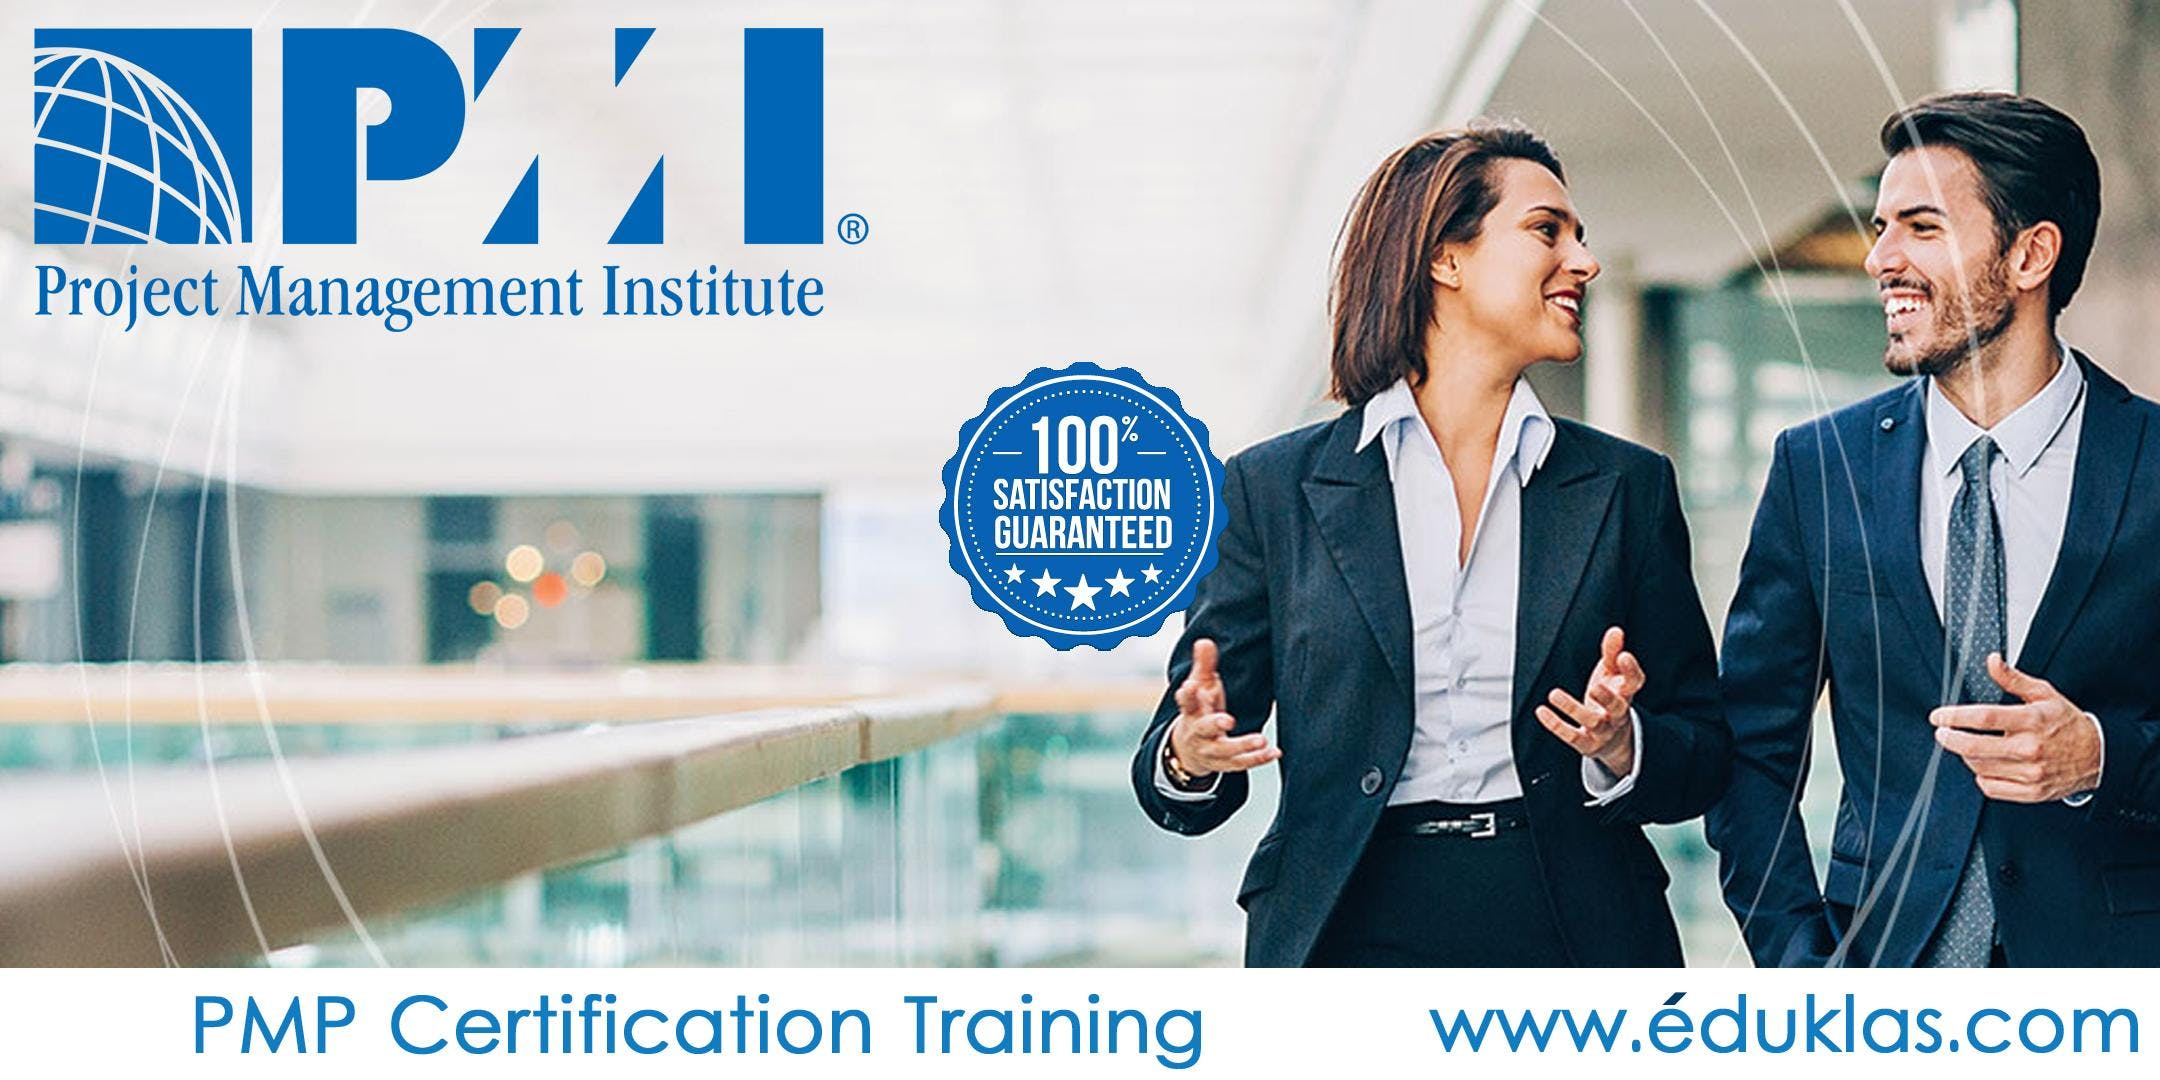 Pmp Certification Training Best Pmp Training Top 10 Coaching